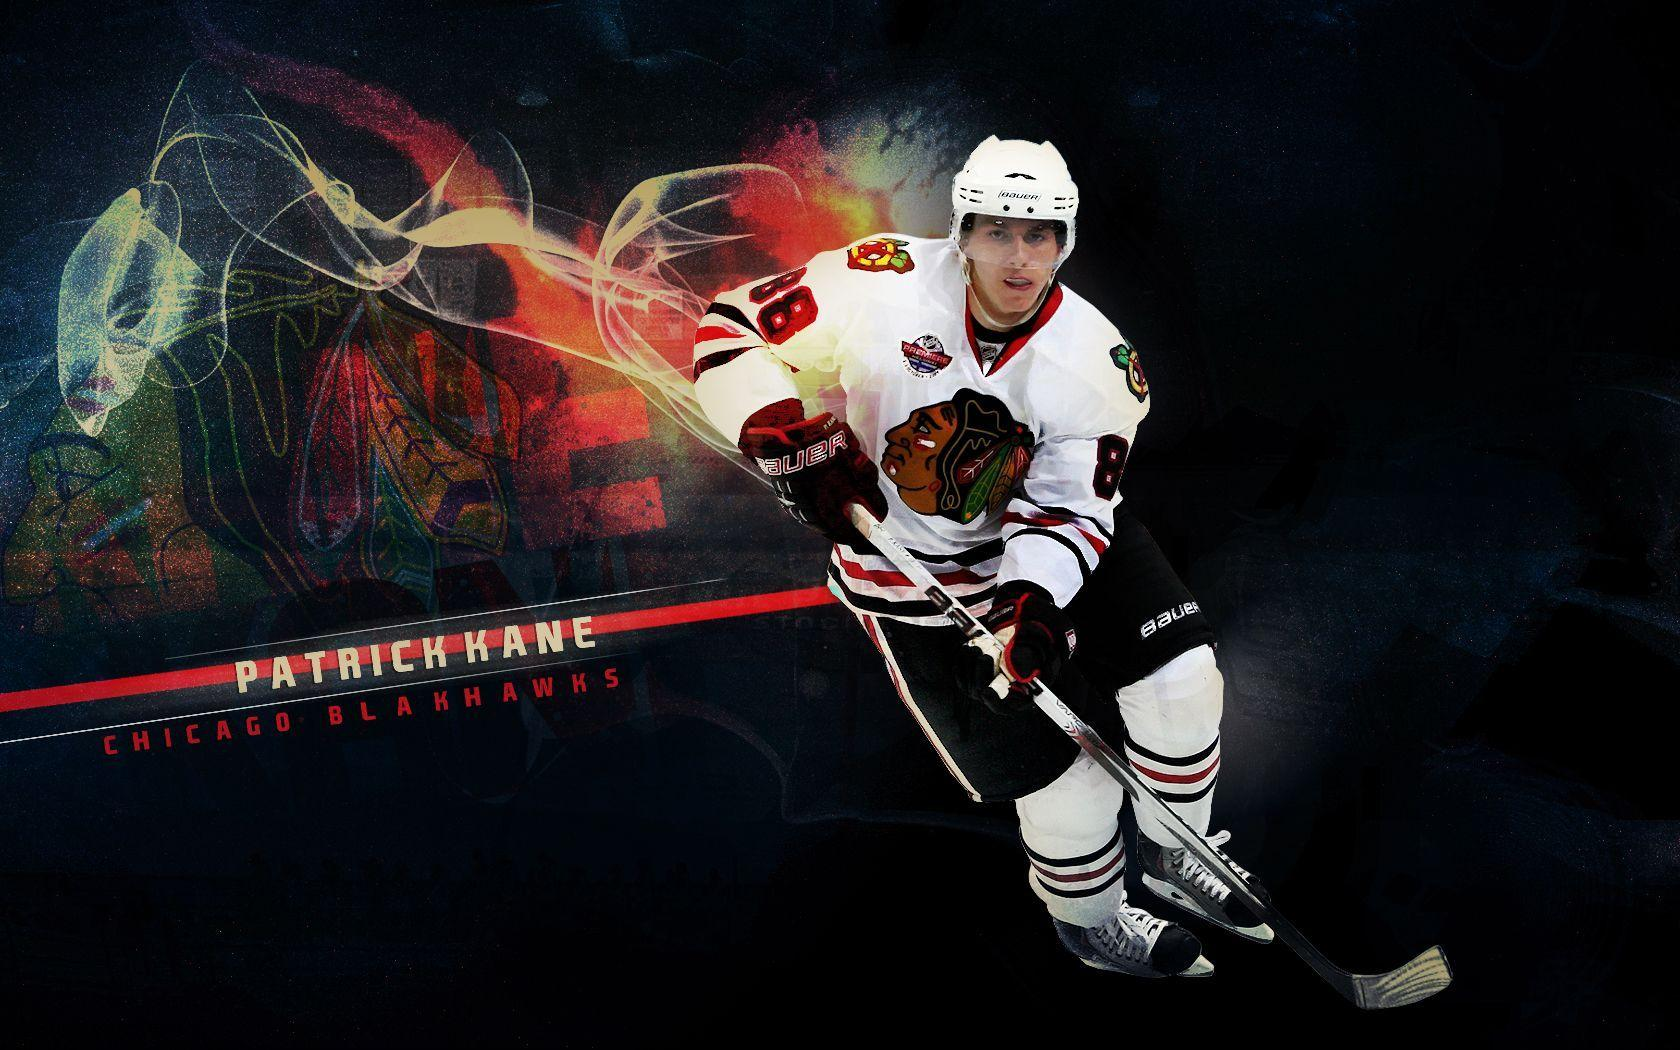 Sick Wallpapers For Iphone 6 Kane 2016 Wallpapers Wallpaper Cave